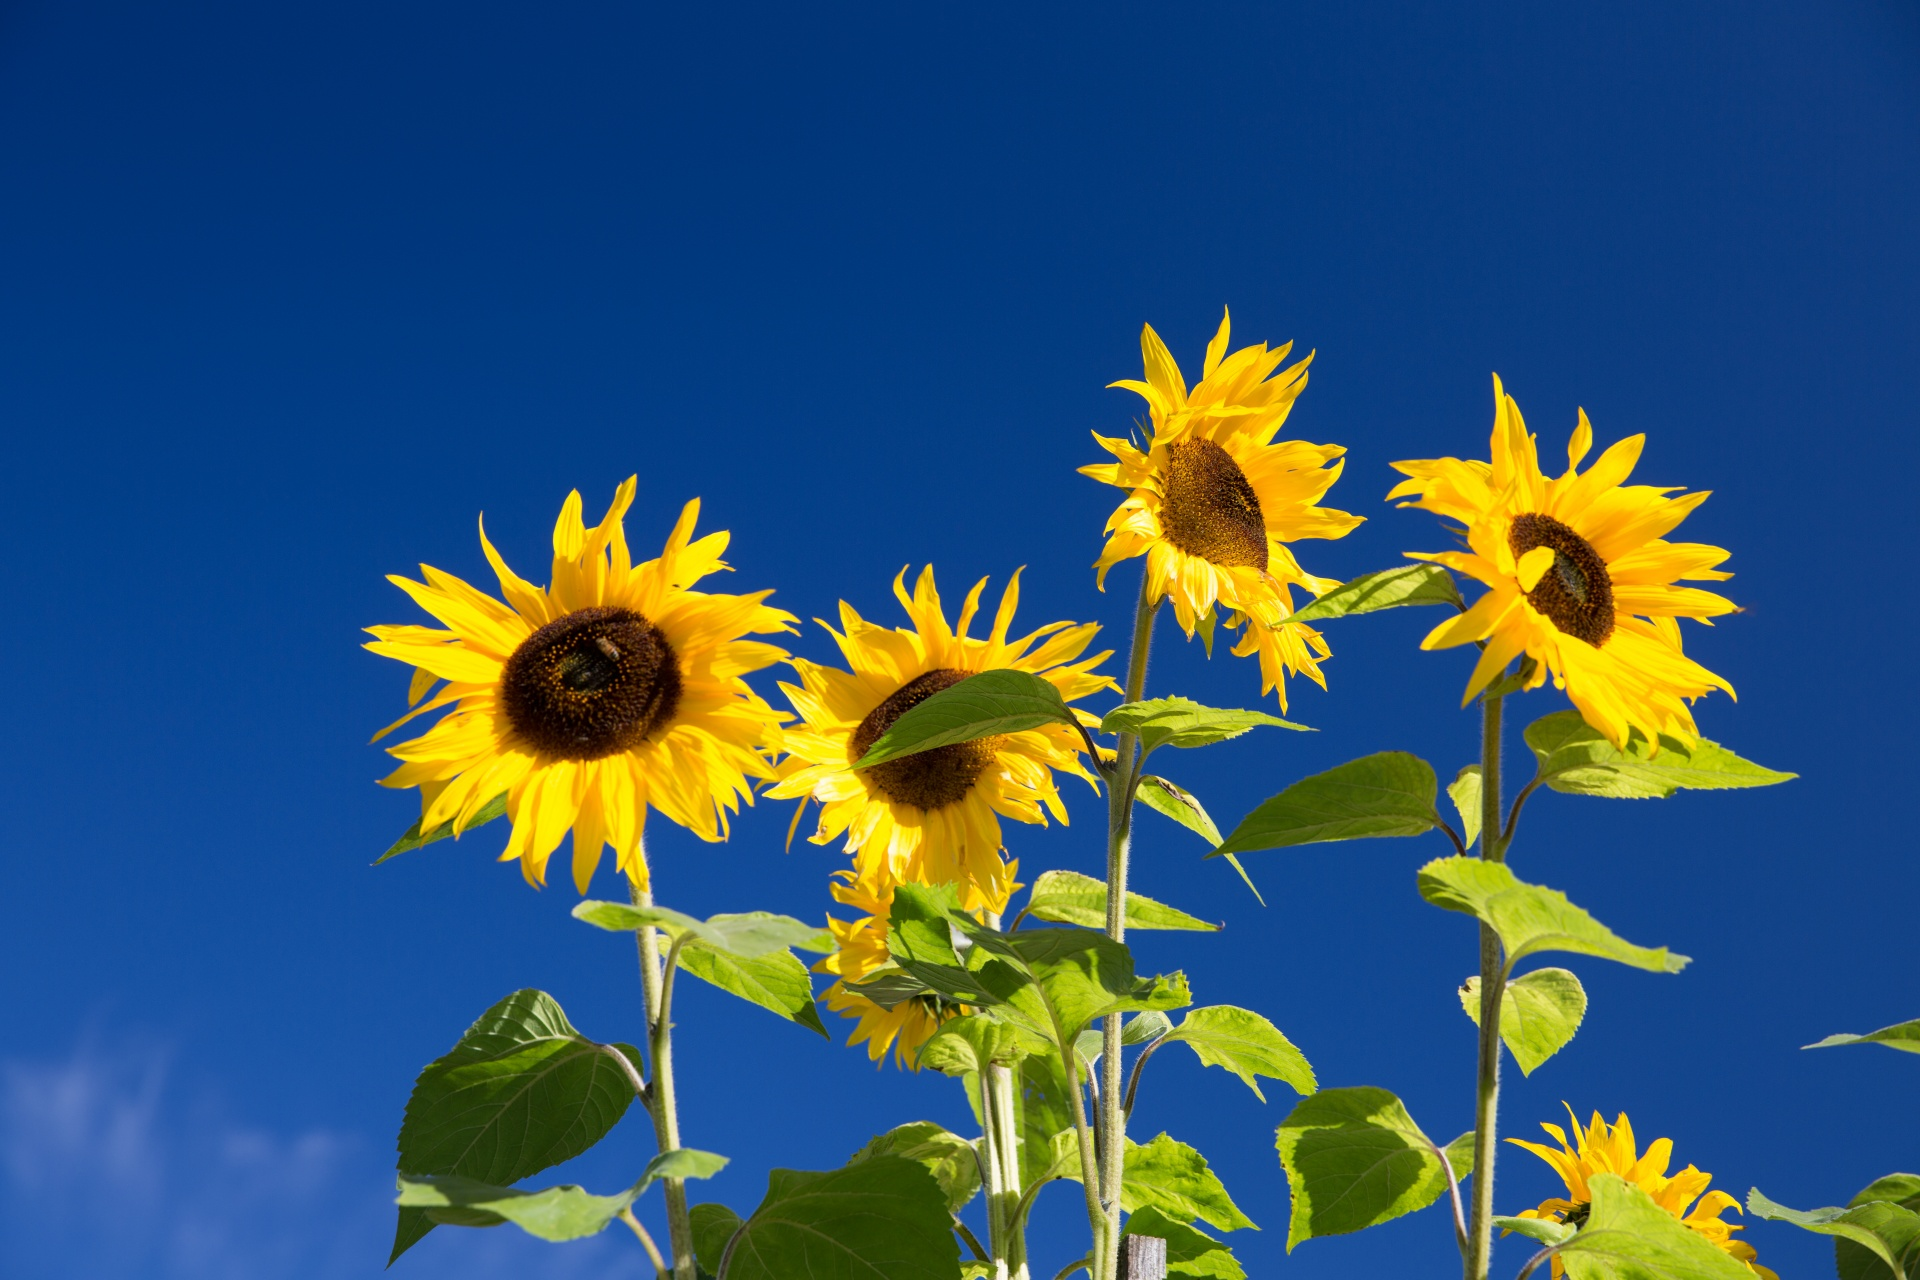 Free Fall Wallpaper Pics Sunflowers And Blue Sky Free Stock Photo Public Domain